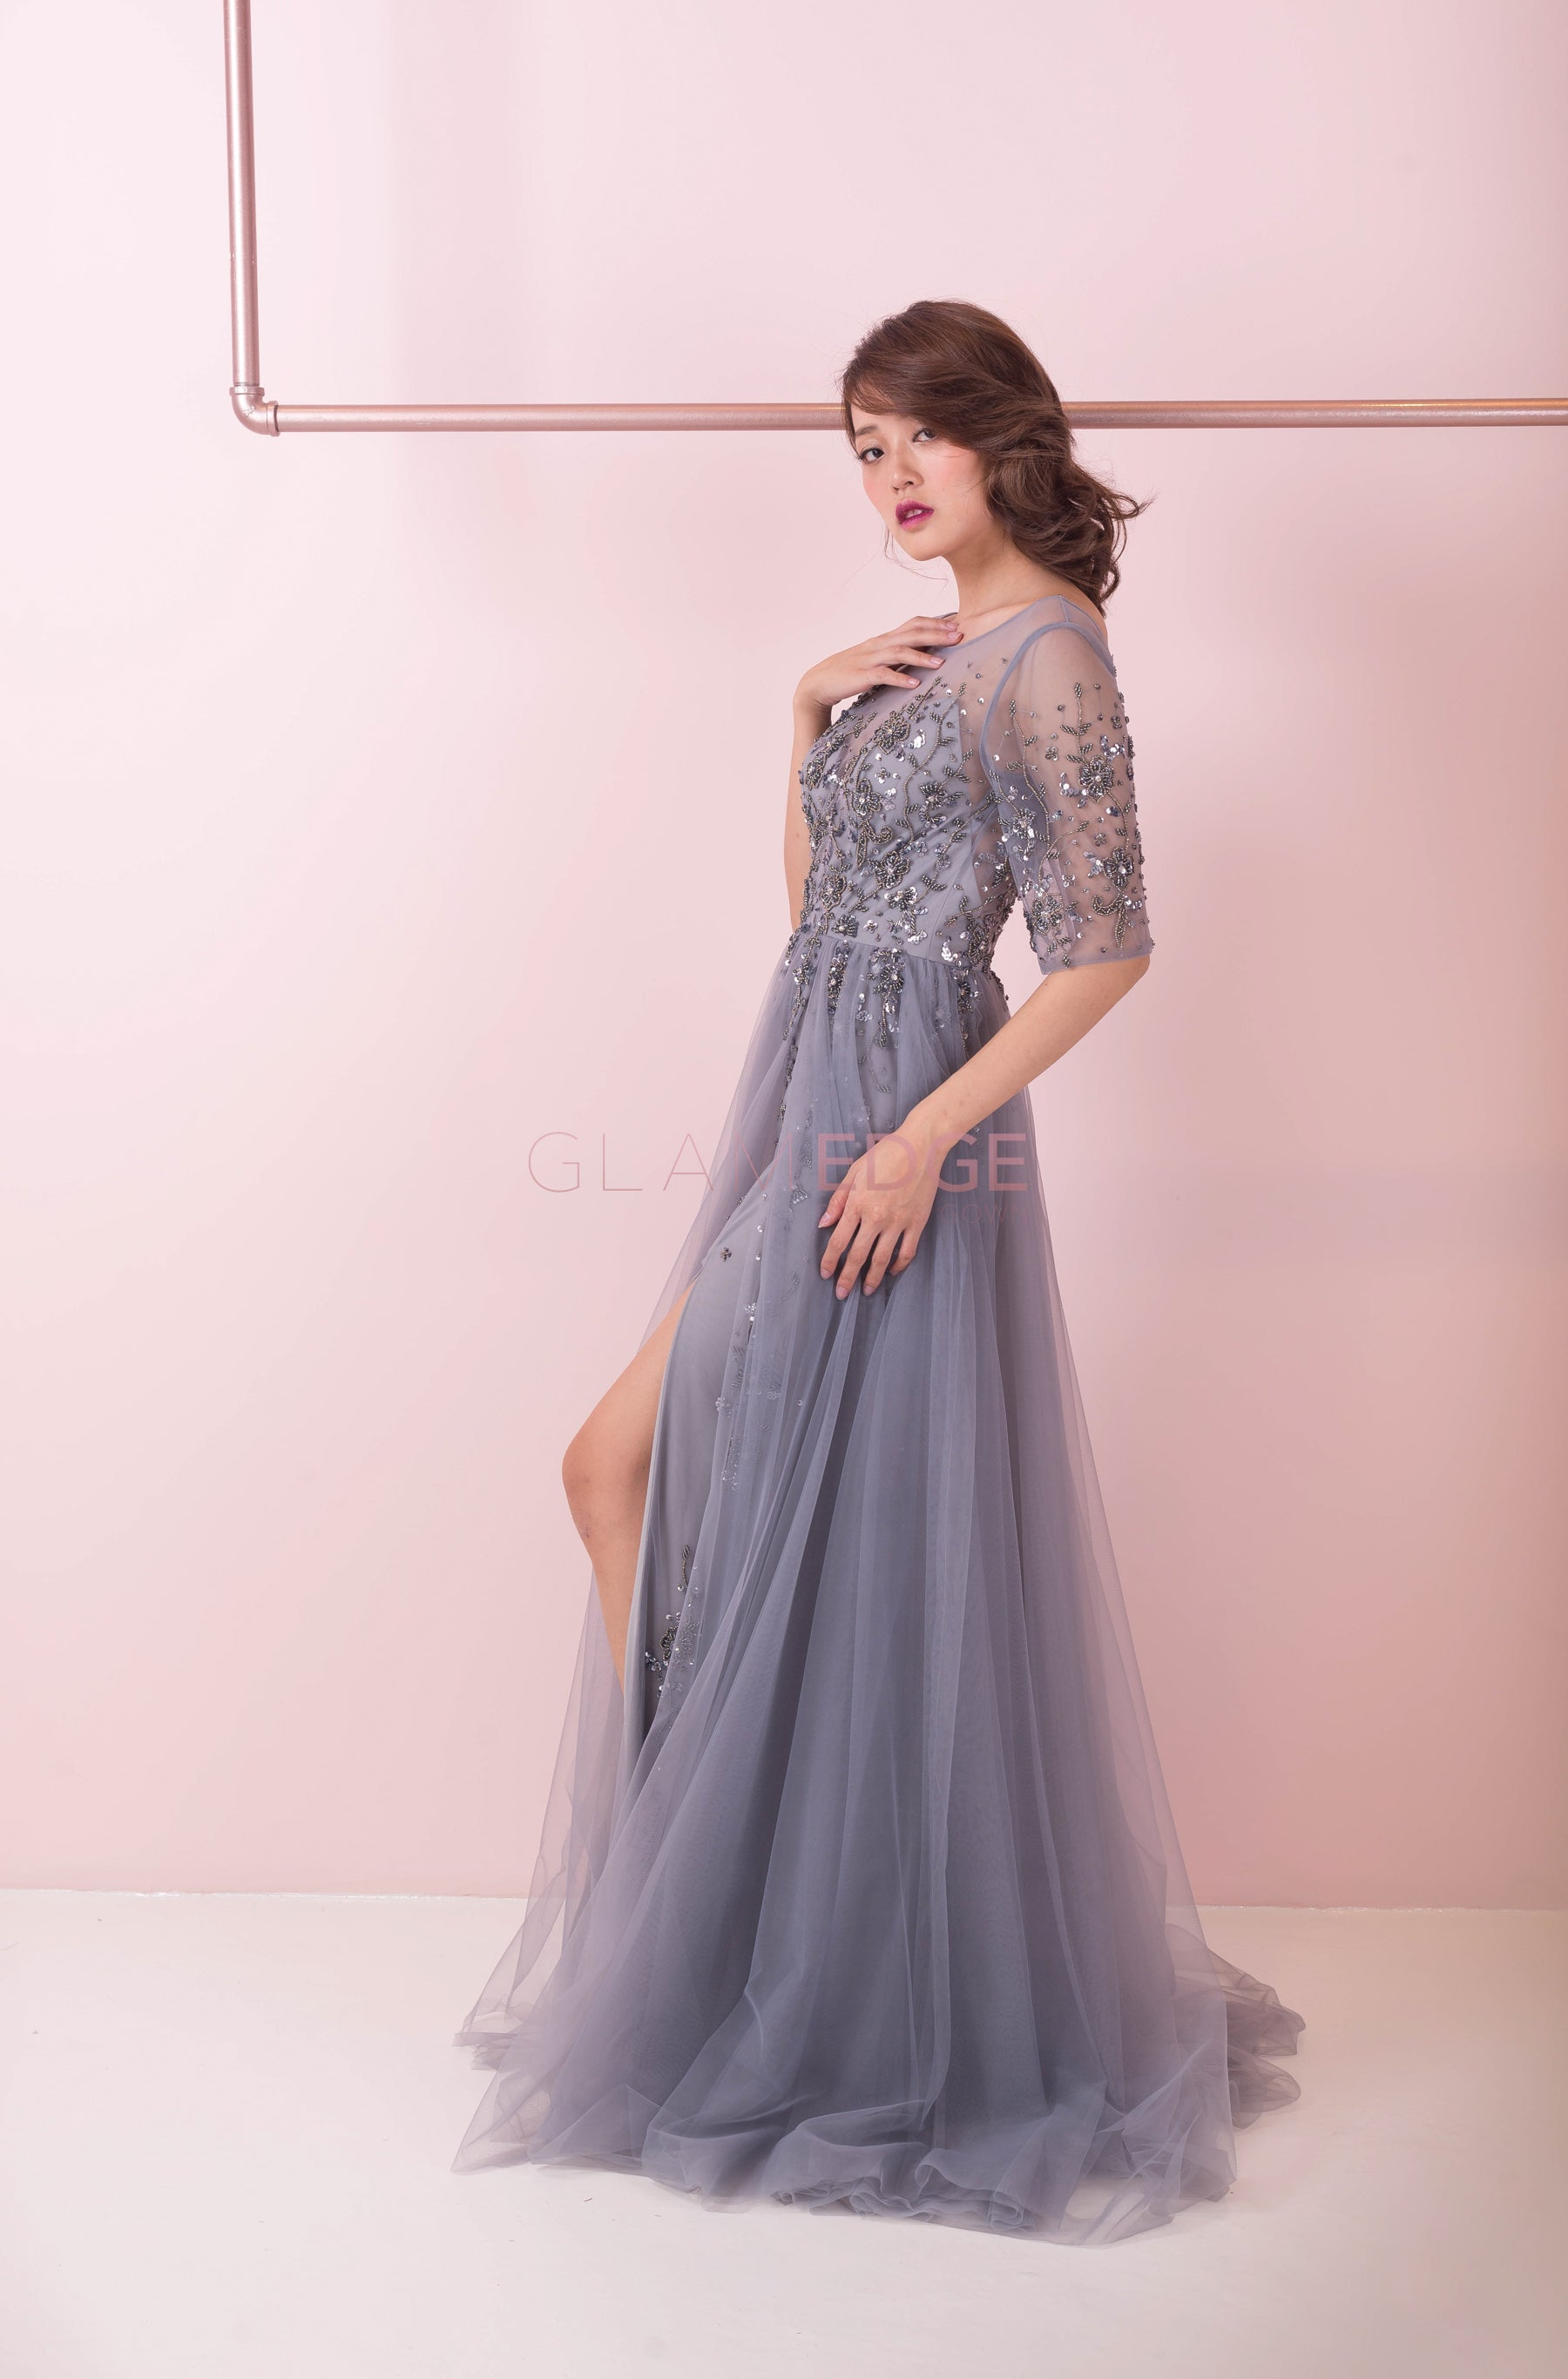 Glamorous Mood Gown